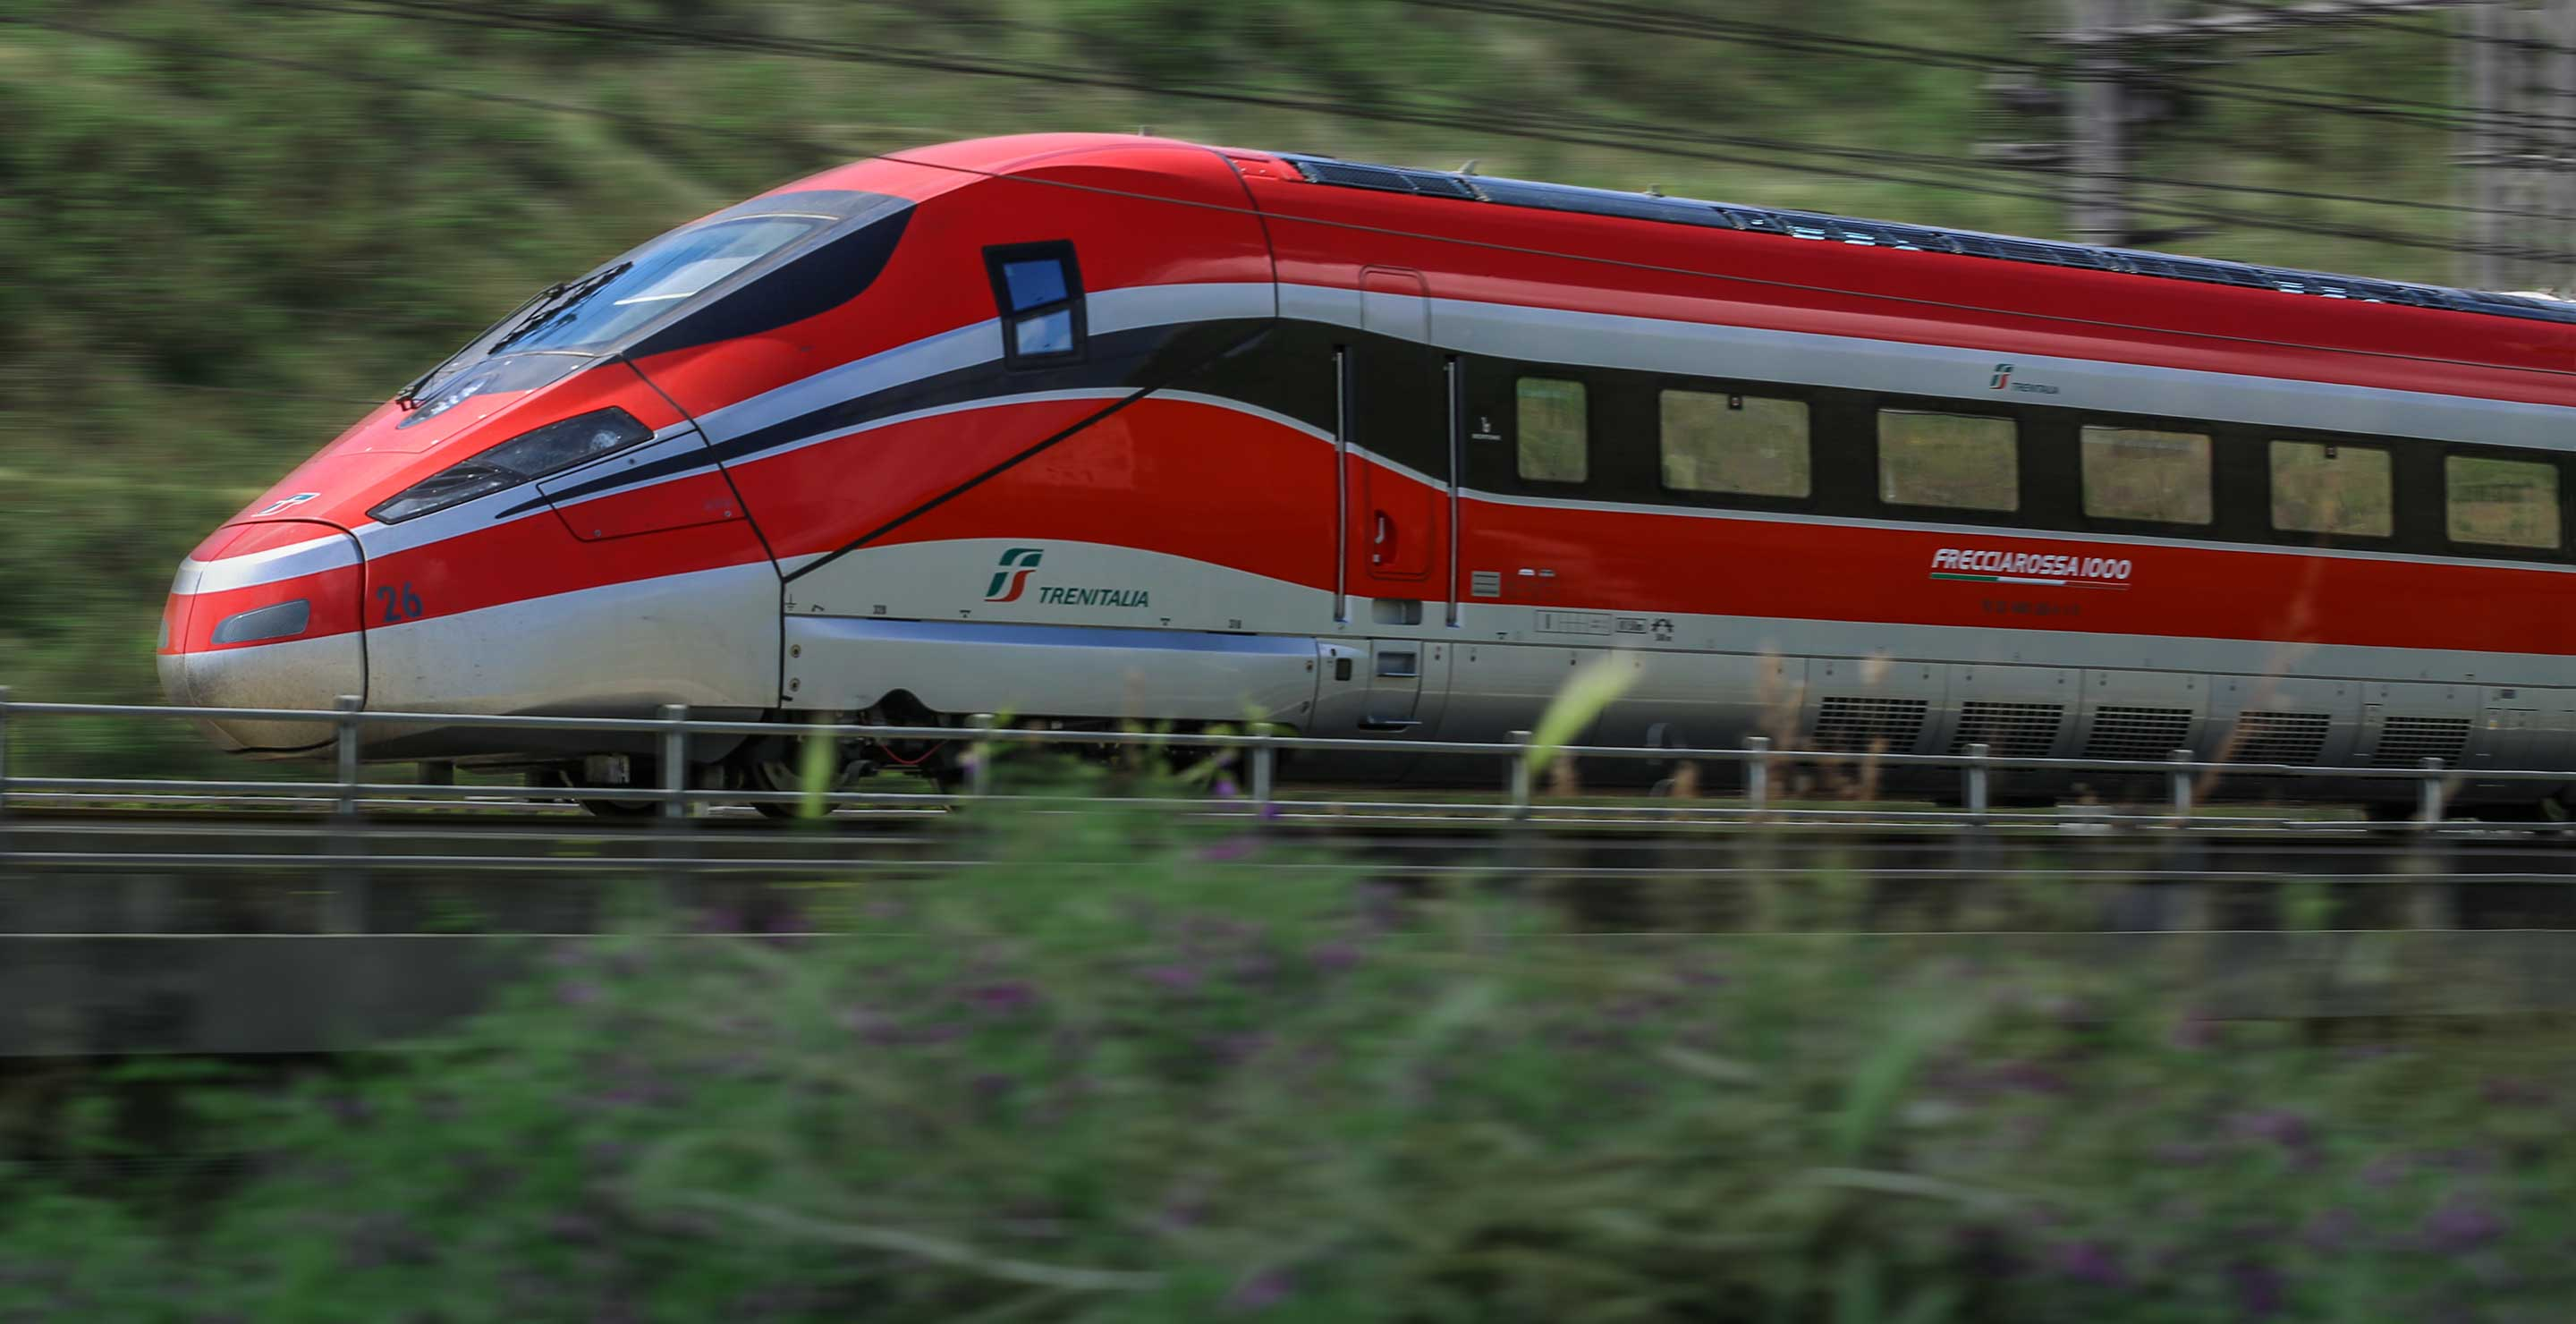 Frecciarossa 1000 train